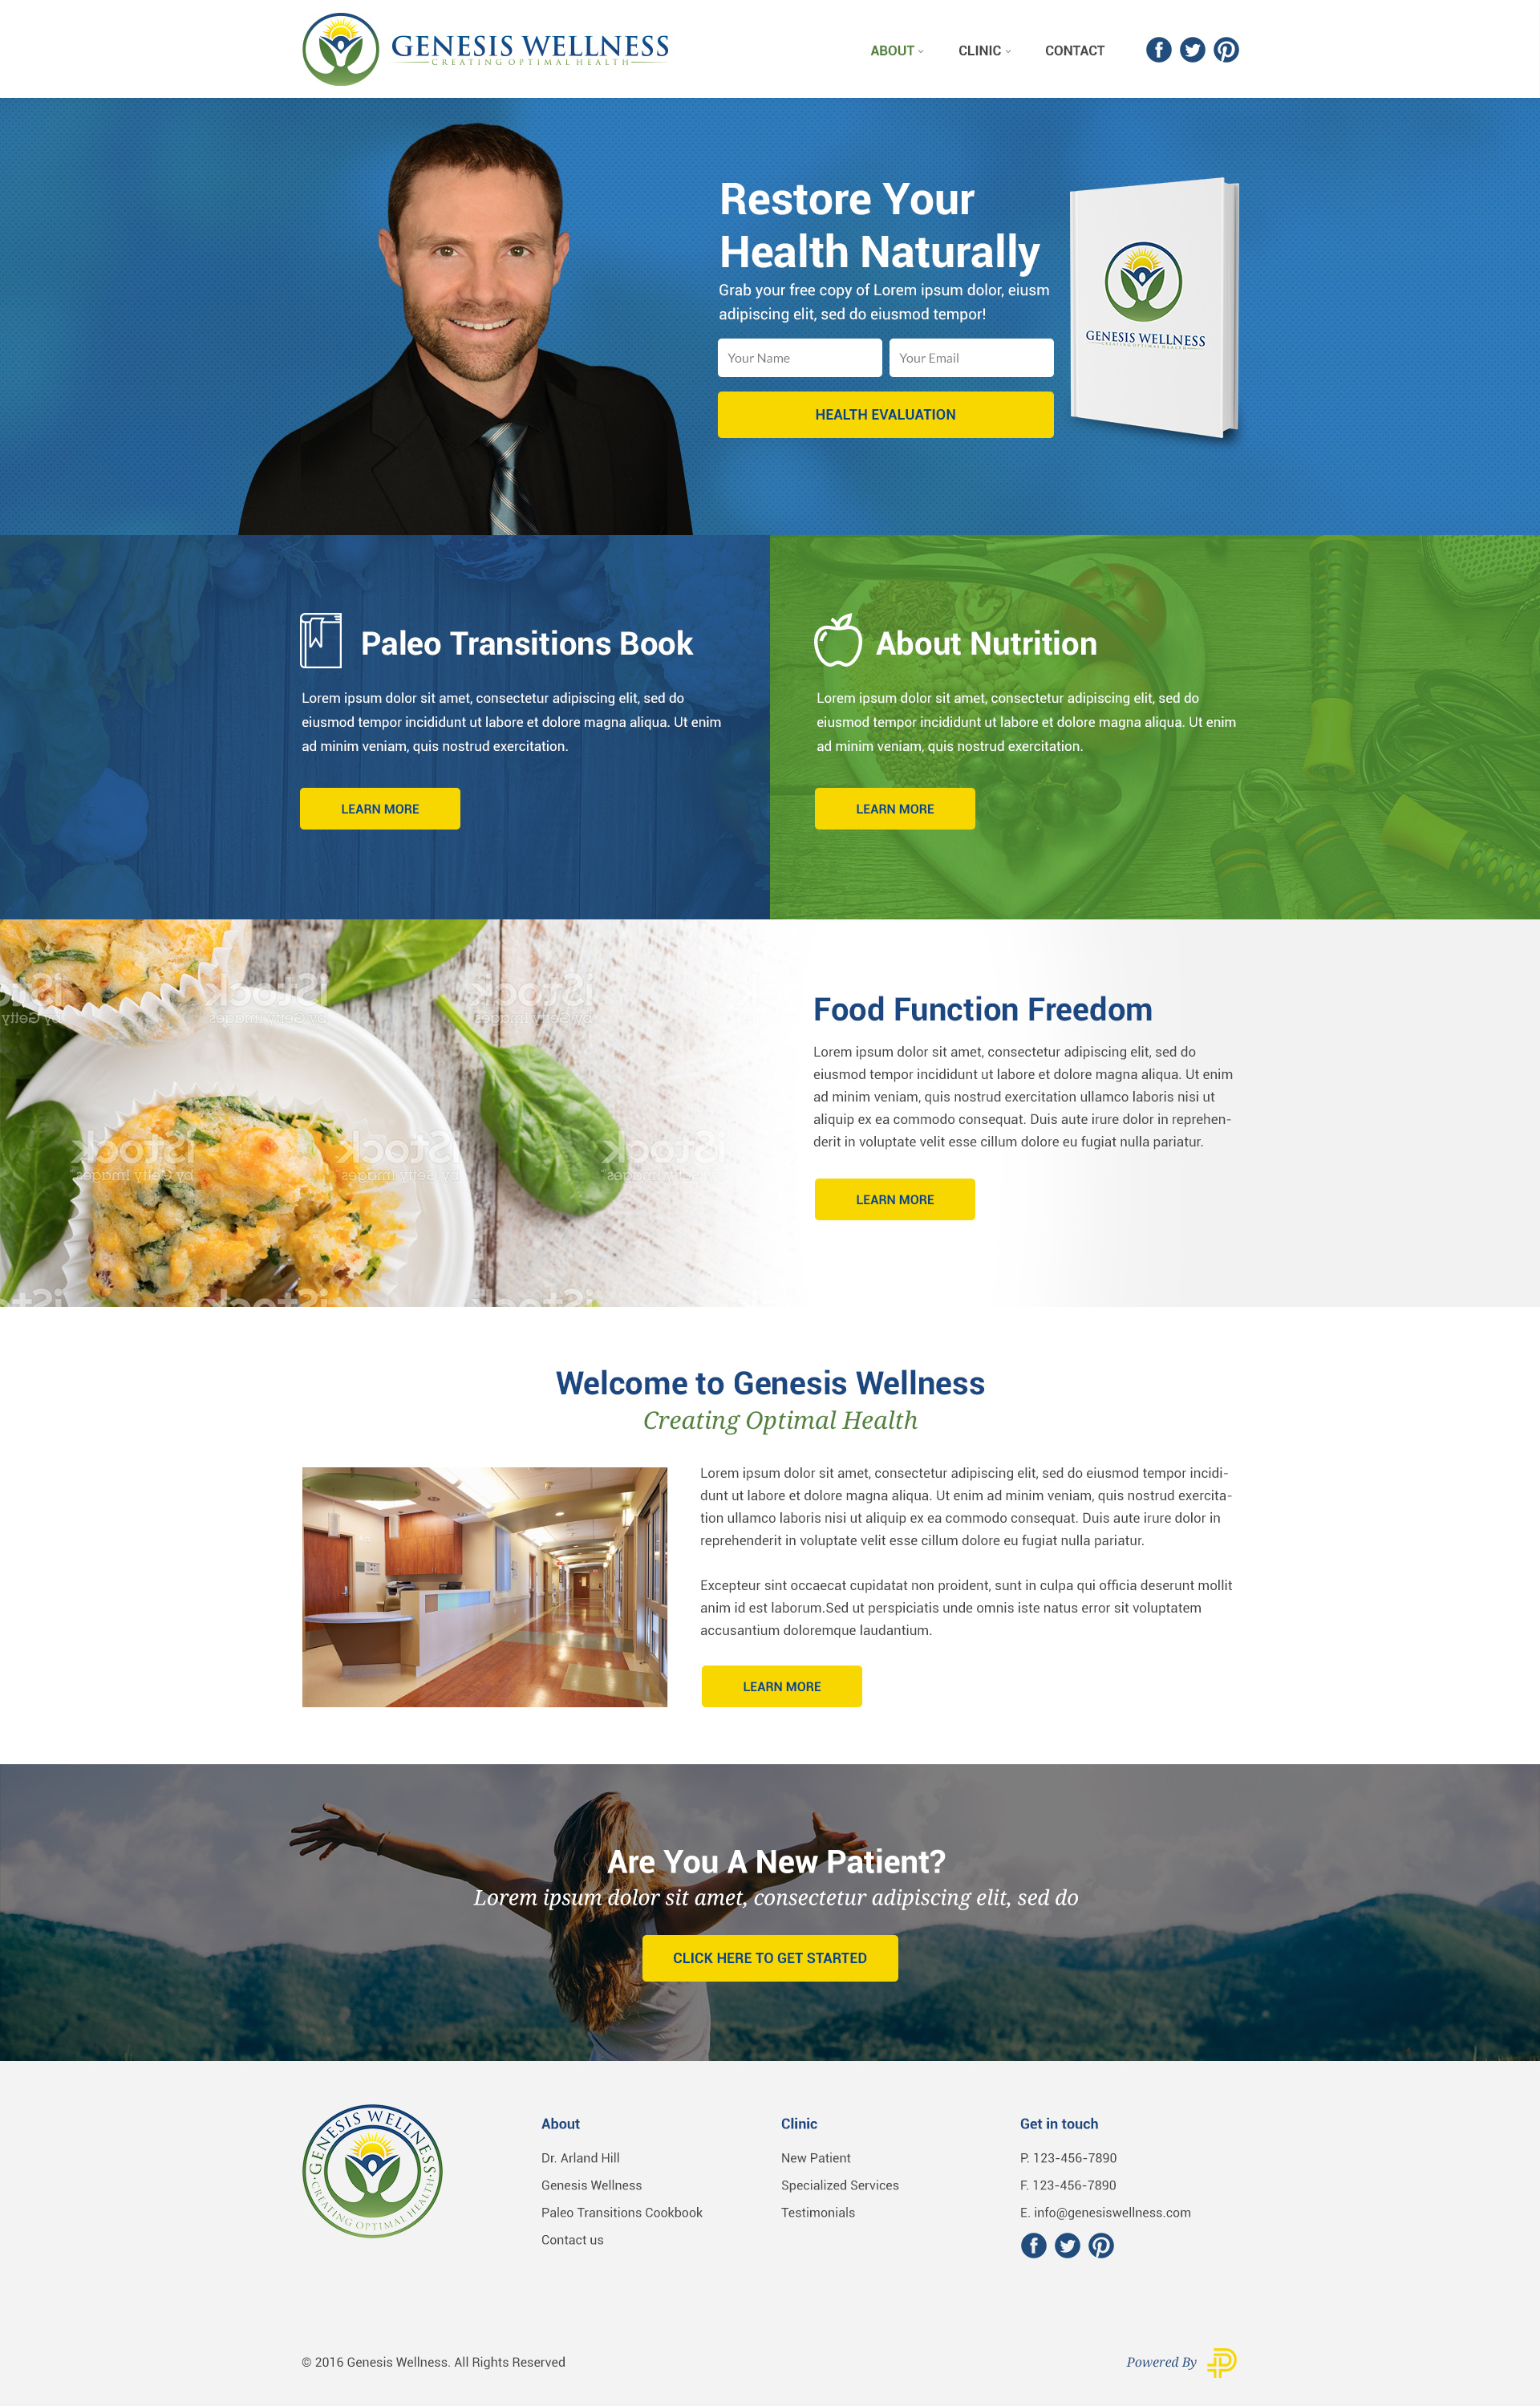 WordPress Custom Website Design and Development, WordPress Support, WordPress Maintenance, Infusionsoft